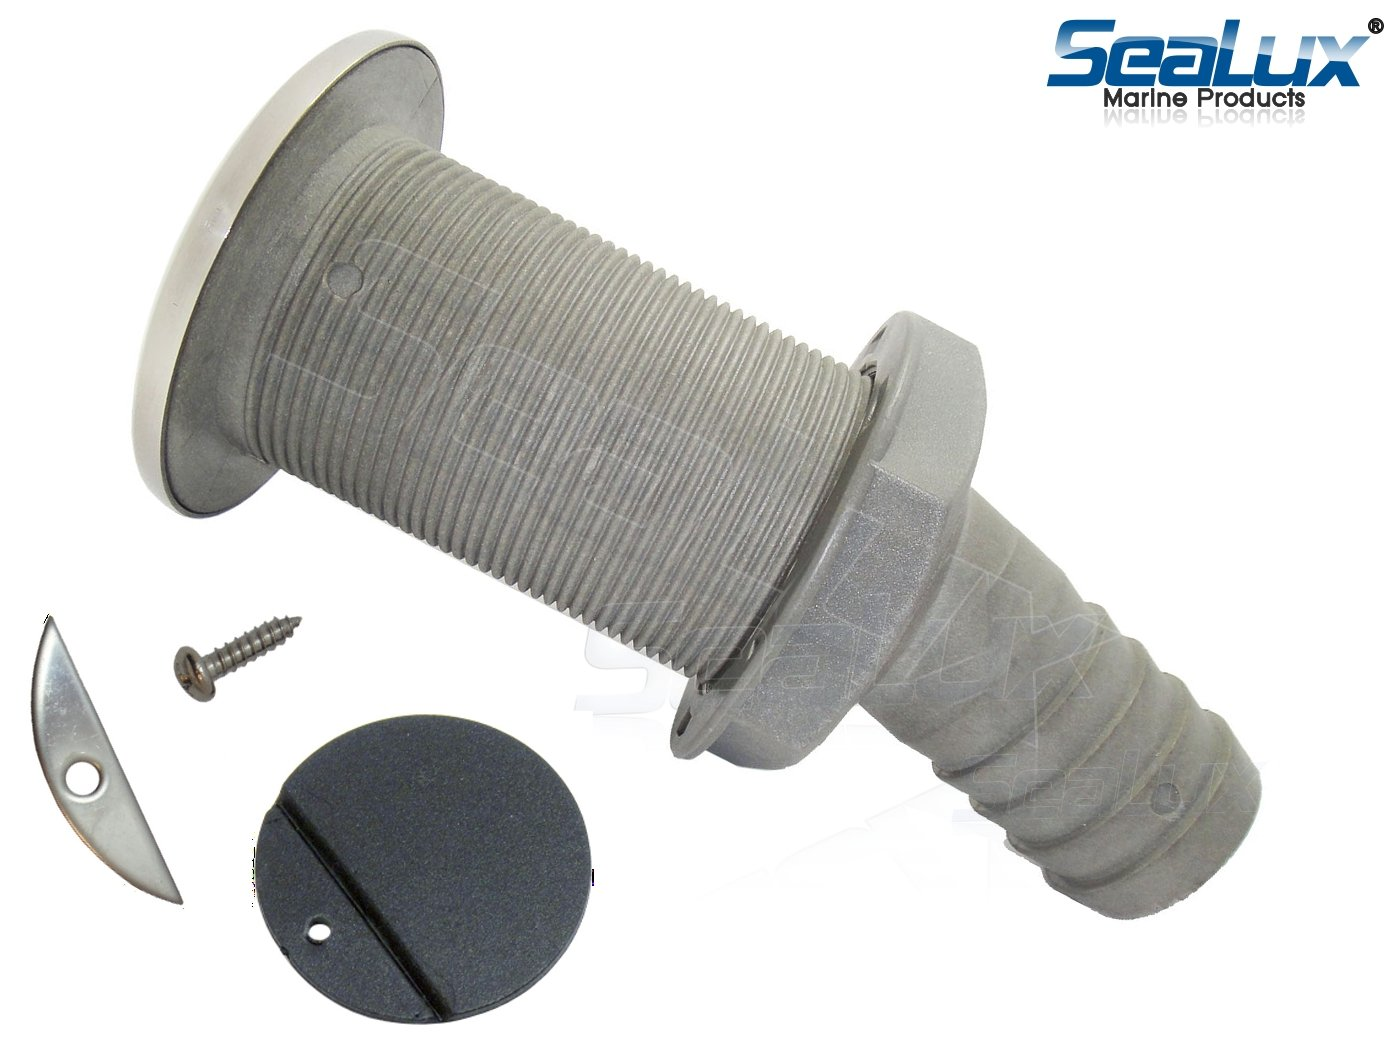 SeaLux Marine 15 degree 316 SS Trim Cover Grey Poly Thru-Hull/STALON Scupper Drain with RUBBER FLAPPER for Hose dia. 1-1/2'', Flange dia. 3-1/4'' for Bayliner Boat (Southco, part number M7-10-9005261)